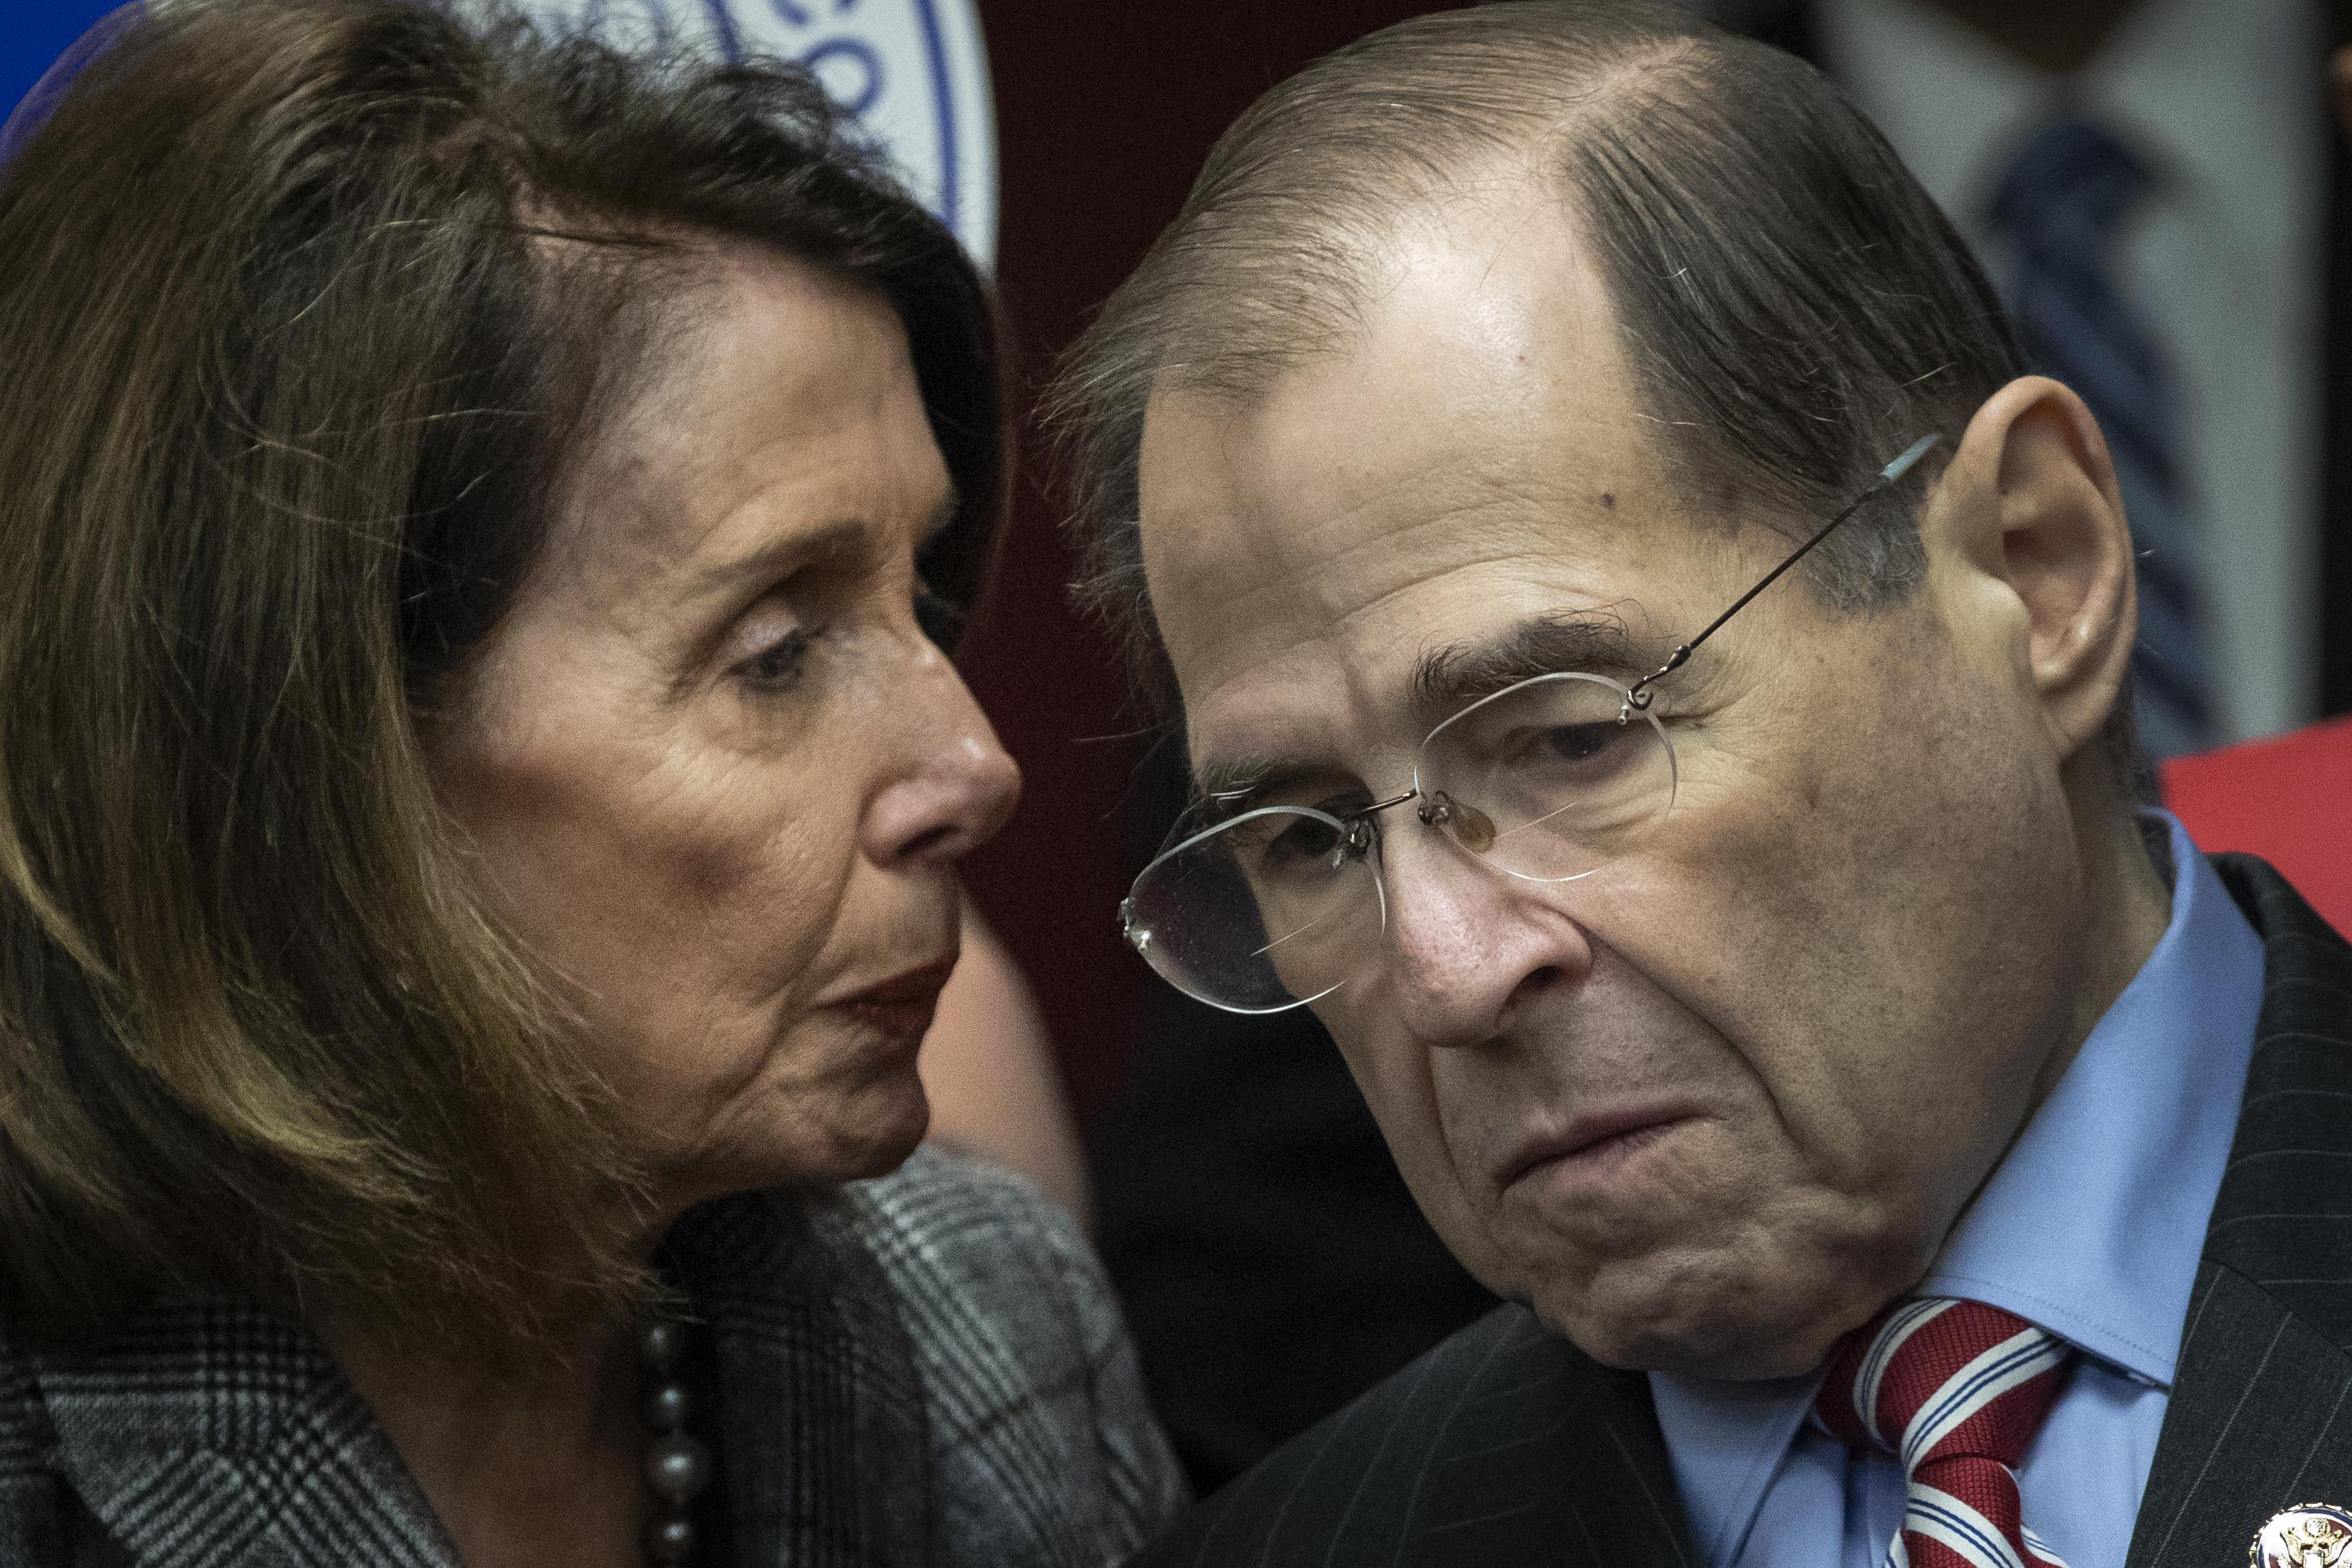 Speaker of the House Nancy Pelosi (D-CA) speaks with House Judiciary Committee Chairman Rep. Jerrold Nadler (D-NY).